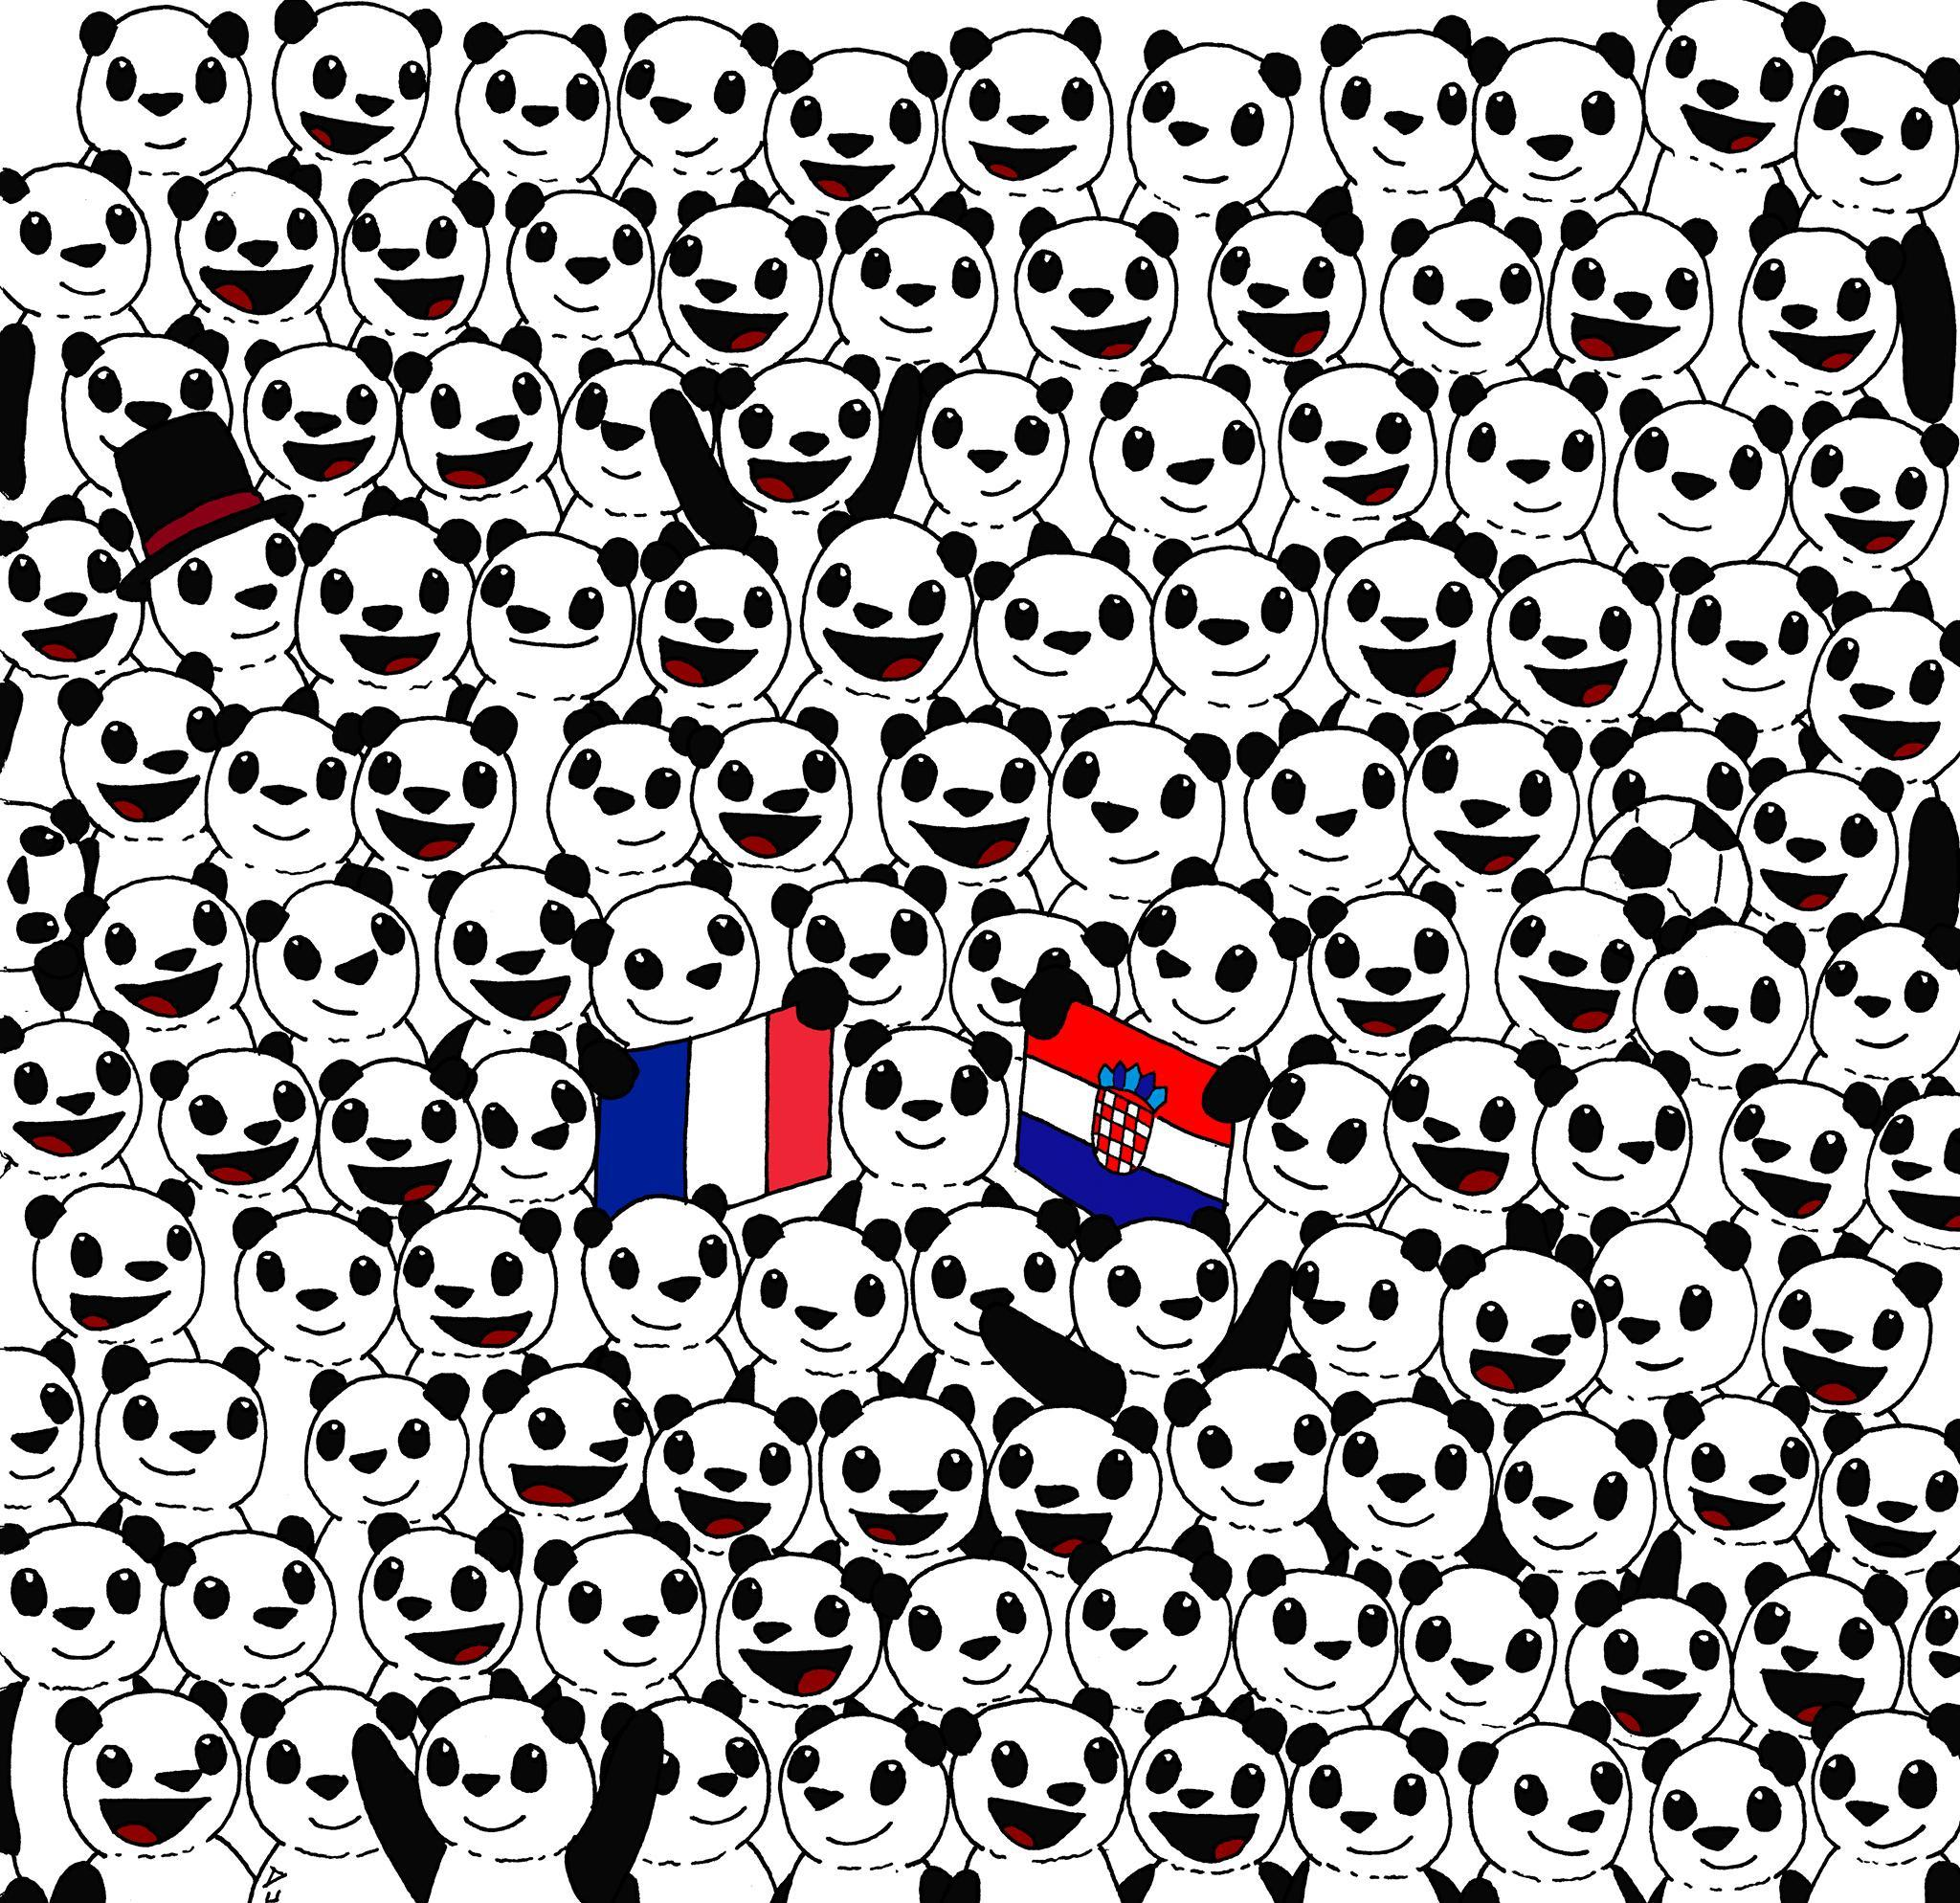 Can You Spot The Football Hidden Among The Pandas Tricky Optical Illusion Is Taking The